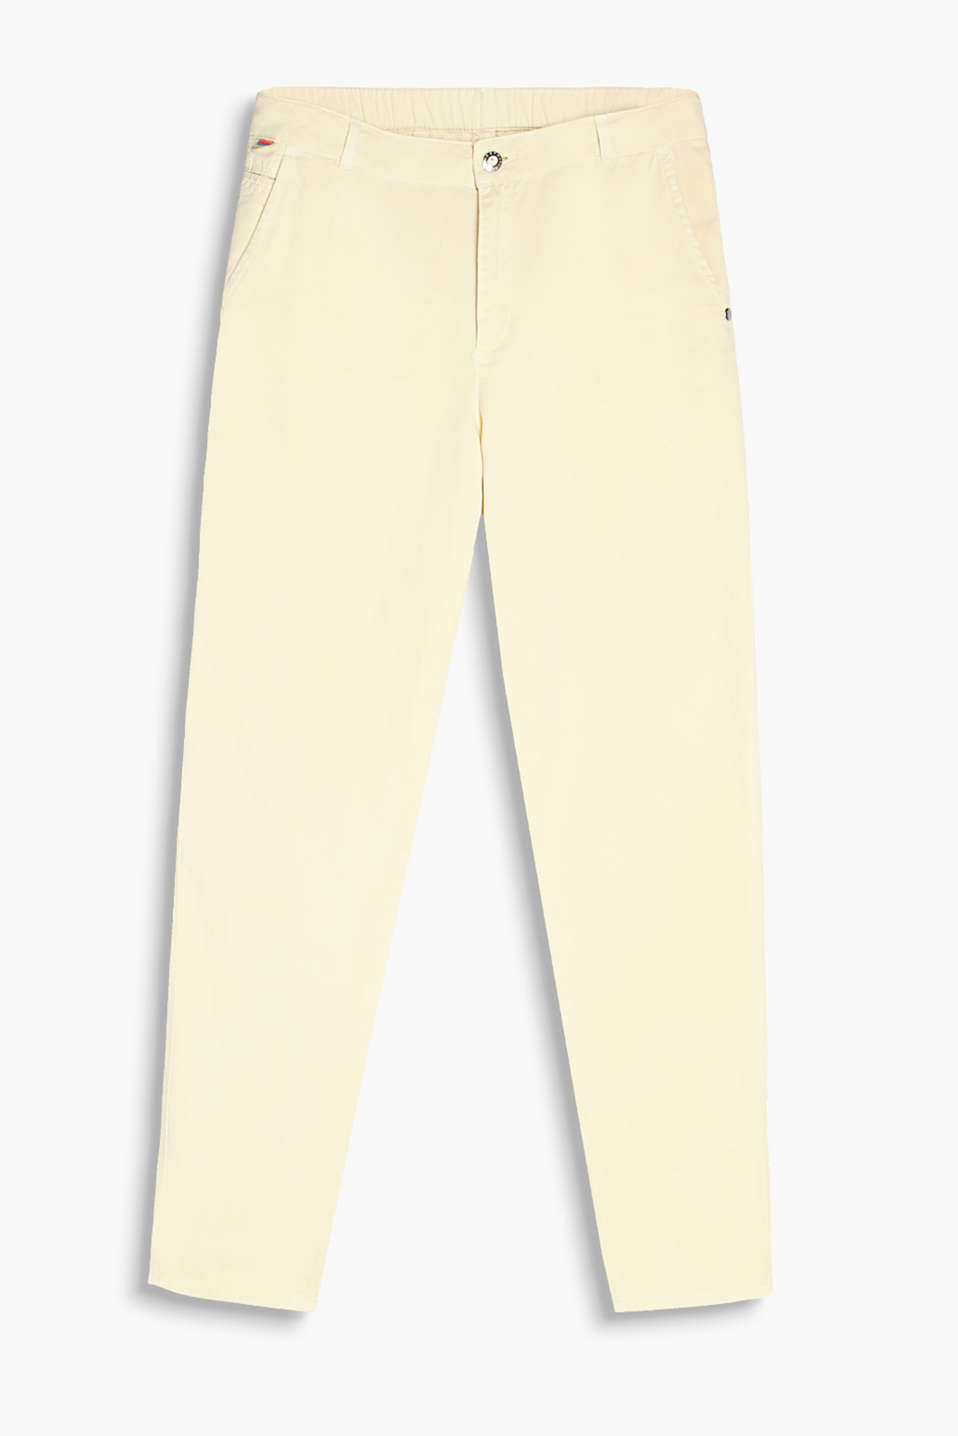 Retro Collection – chinos with an elasticated waistband and added stretch for comfort, organic cotton